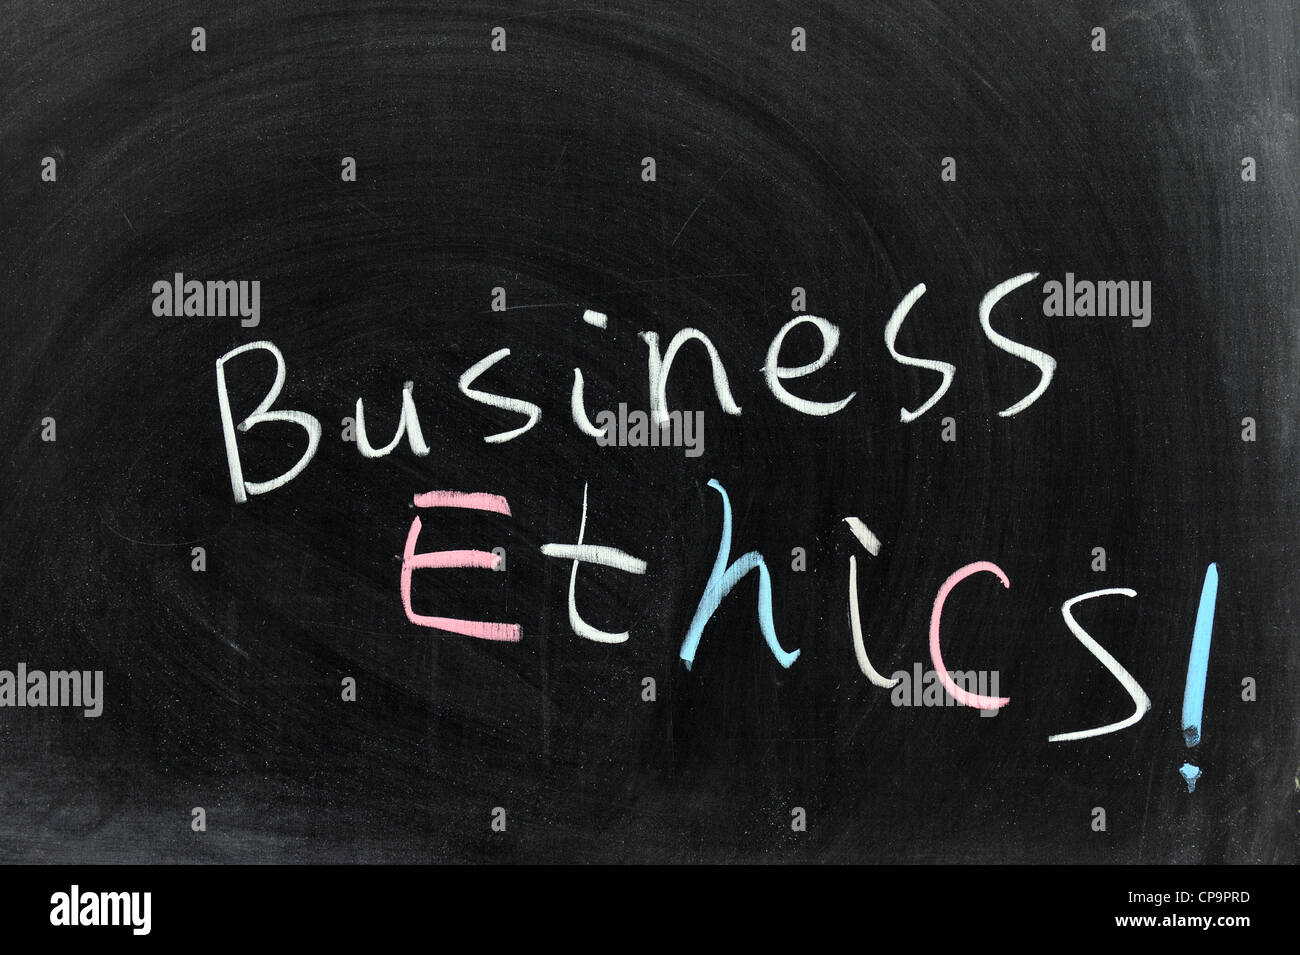 Conceptional chalk drawing - Business ethics - Stock Image